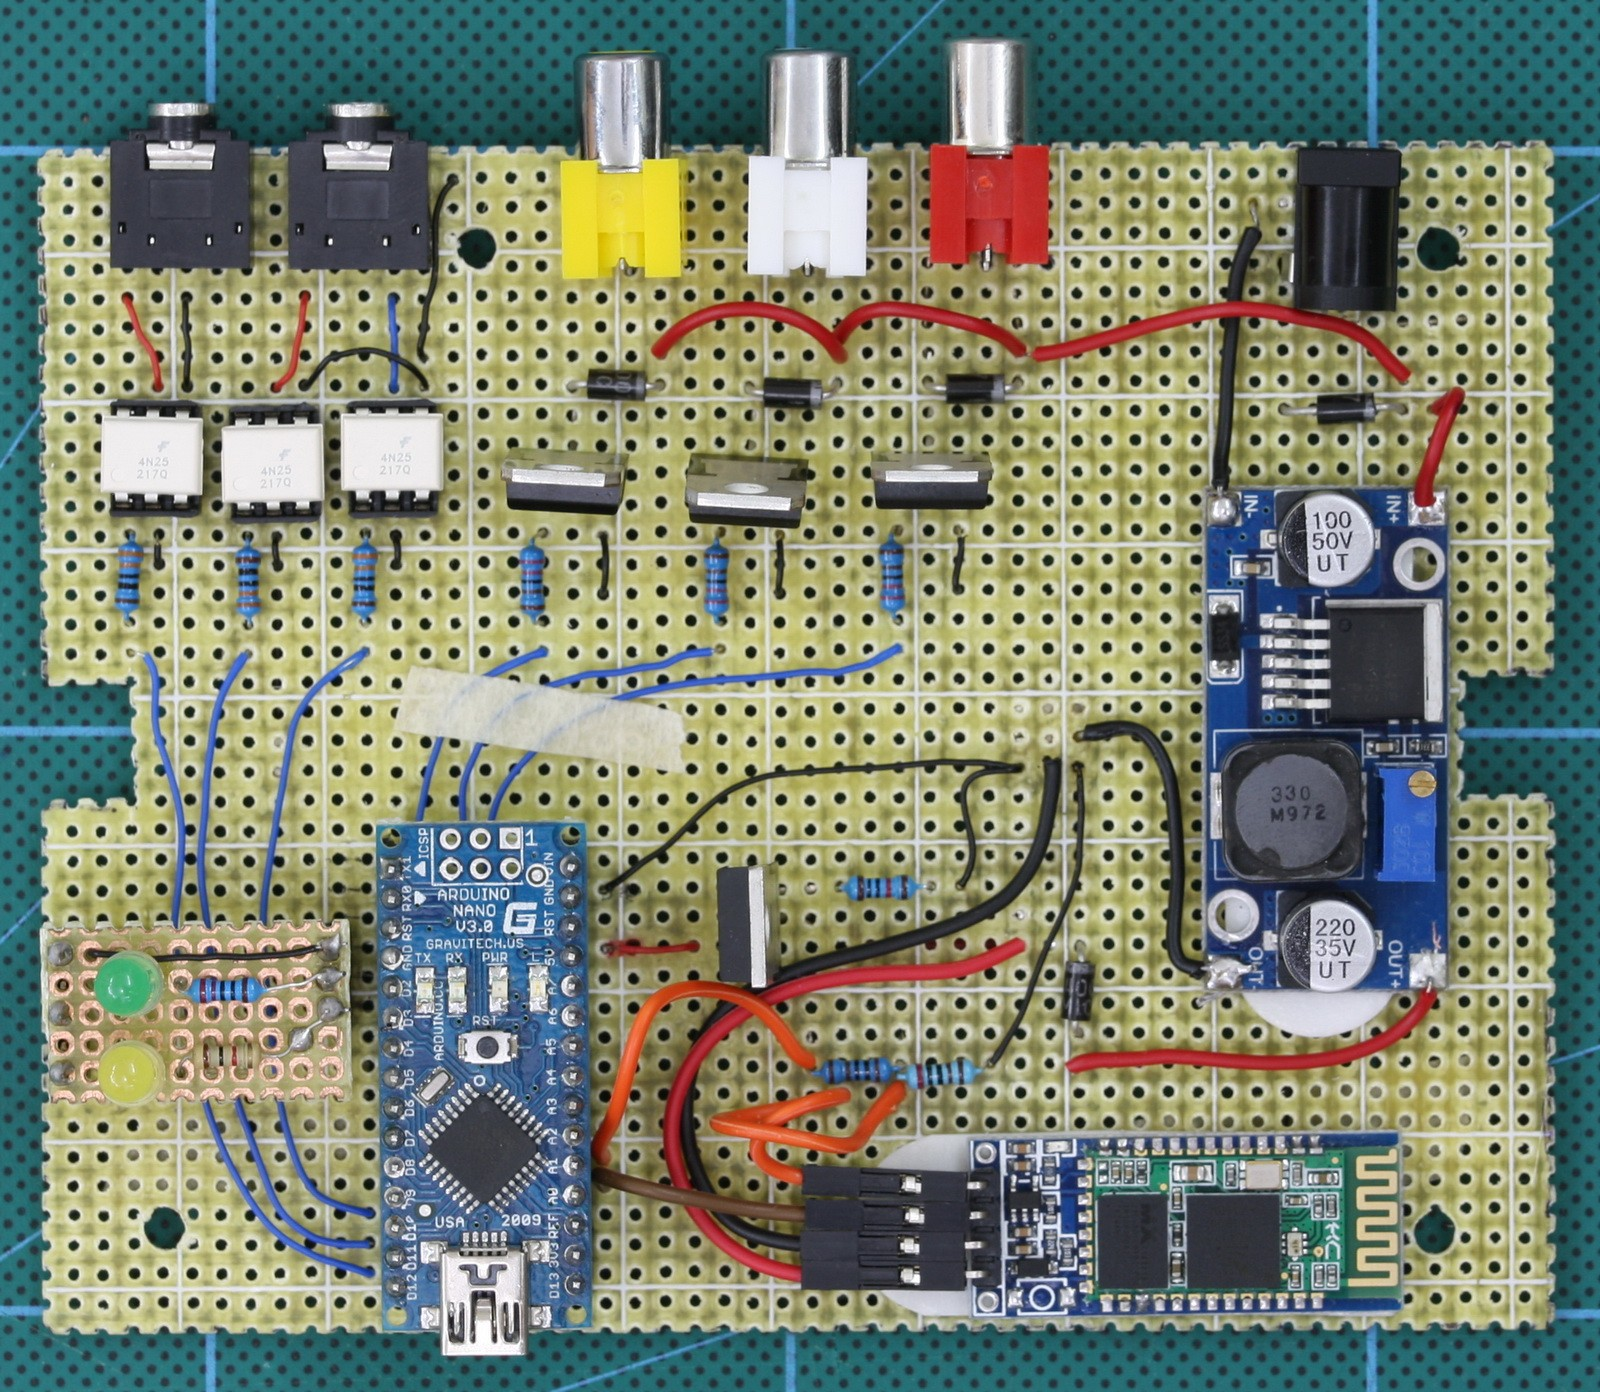 How to Build A Full Adder On A Breadboard Sk 8240] Build Guide Dropcontrollerbt A Breadboard Of How to Build A Full Adder On A Breadboard